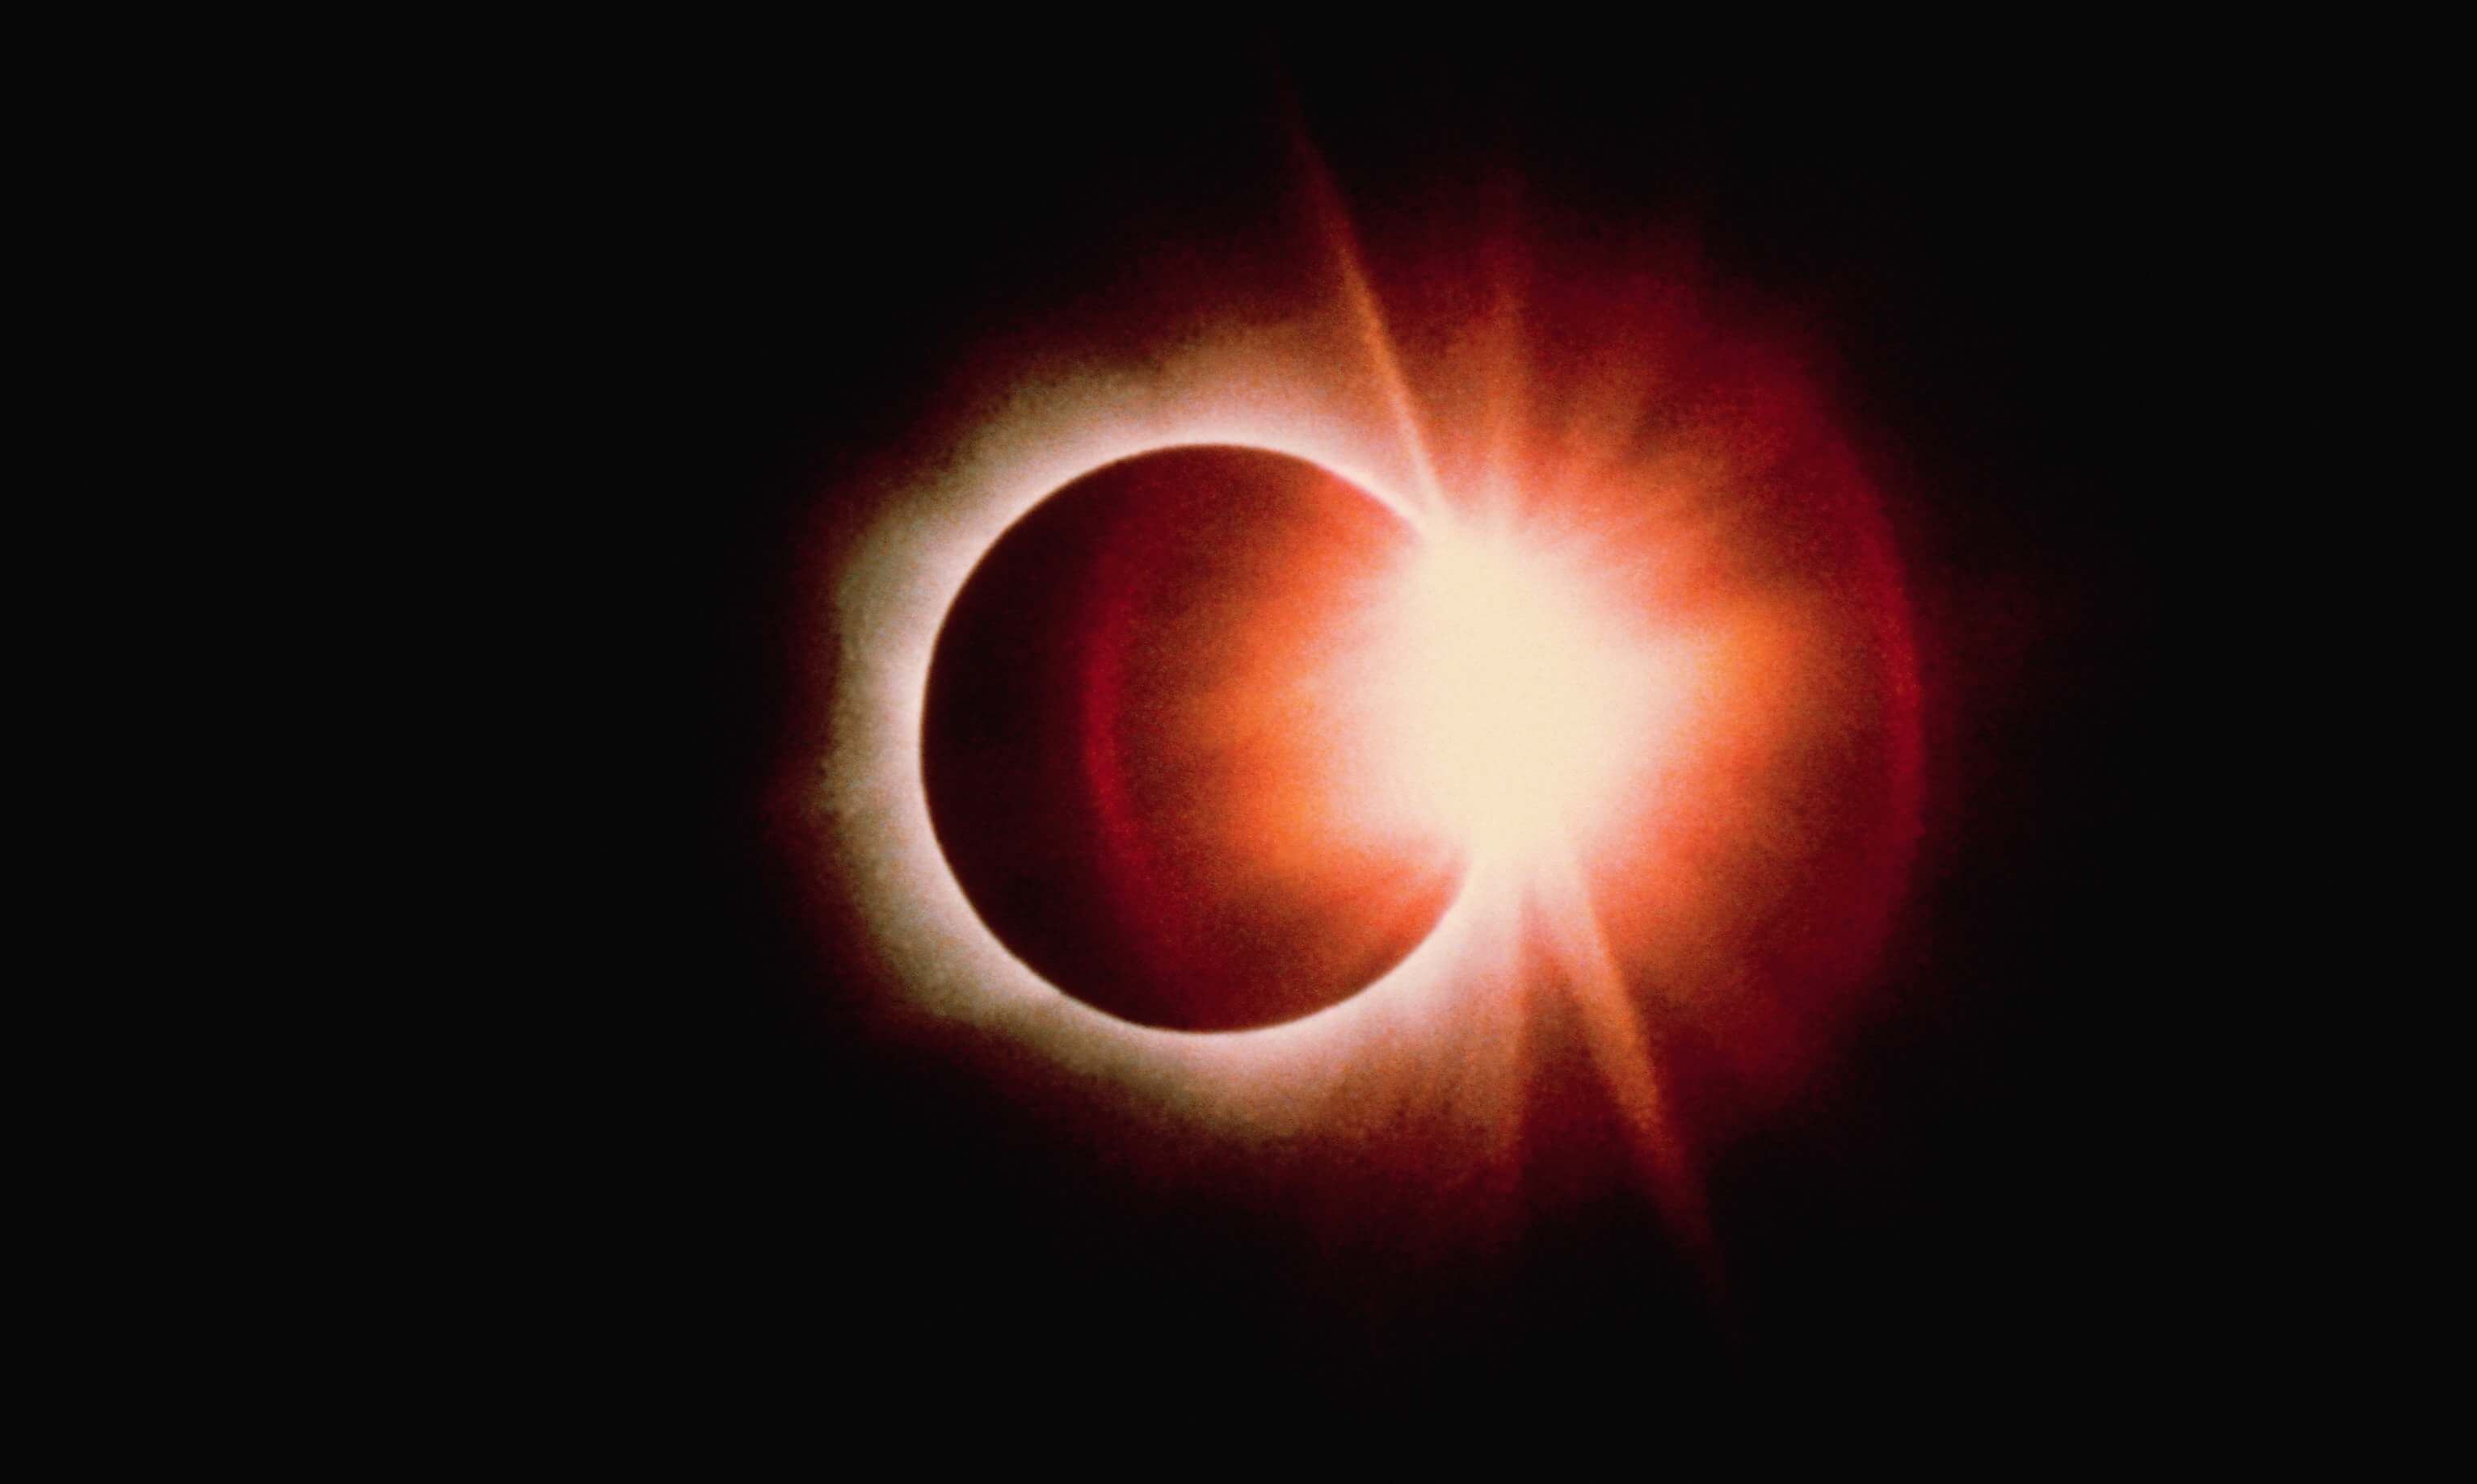 Diamond Ring Effect During Solar Eclipse